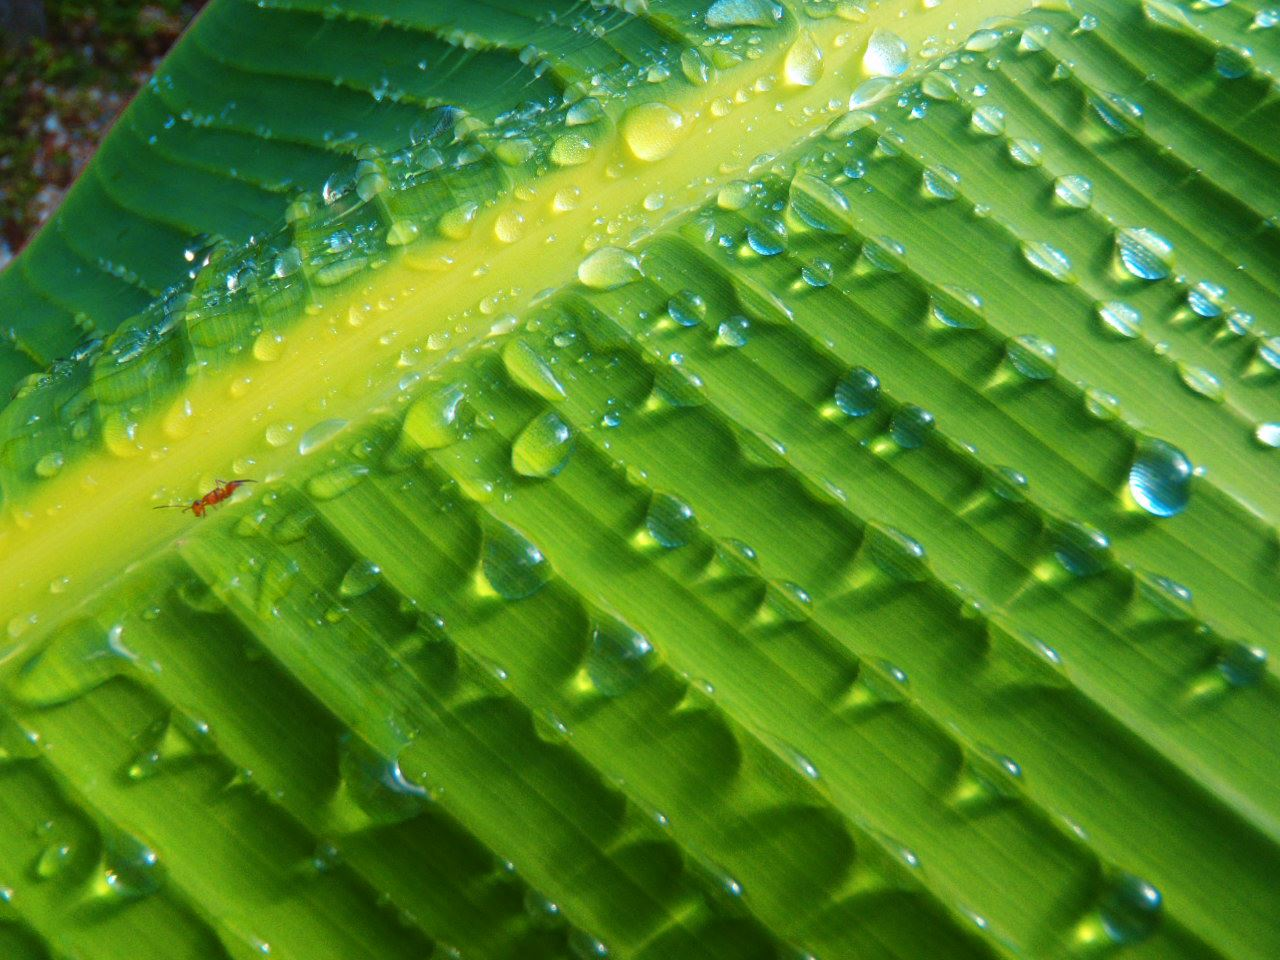 Water drops on a leaf in Costa Rica